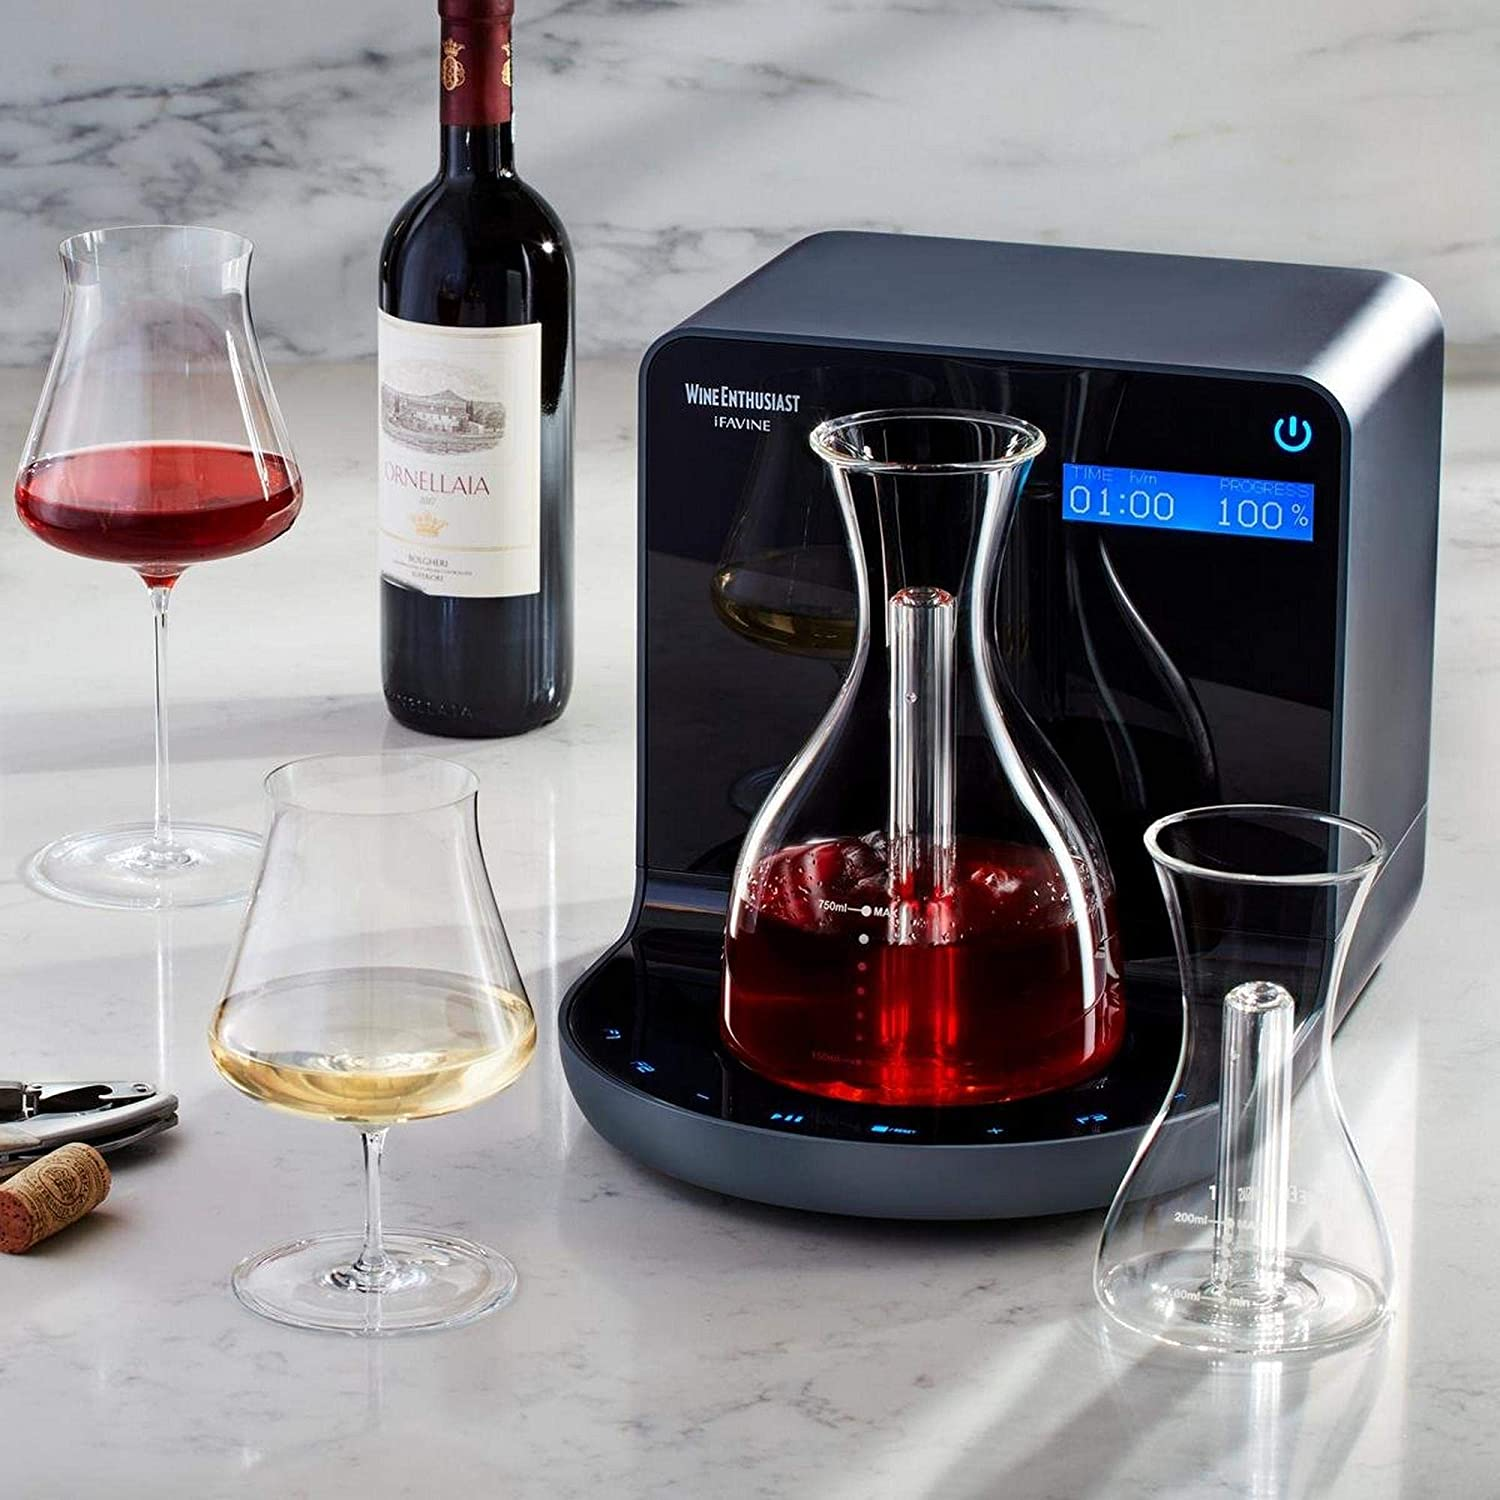 Wine Enthusiast iSommelier Smart Electric Wine Decanter with Bonus Single Glass Carafe - Reduces Decanting Time from Hours to Seconds